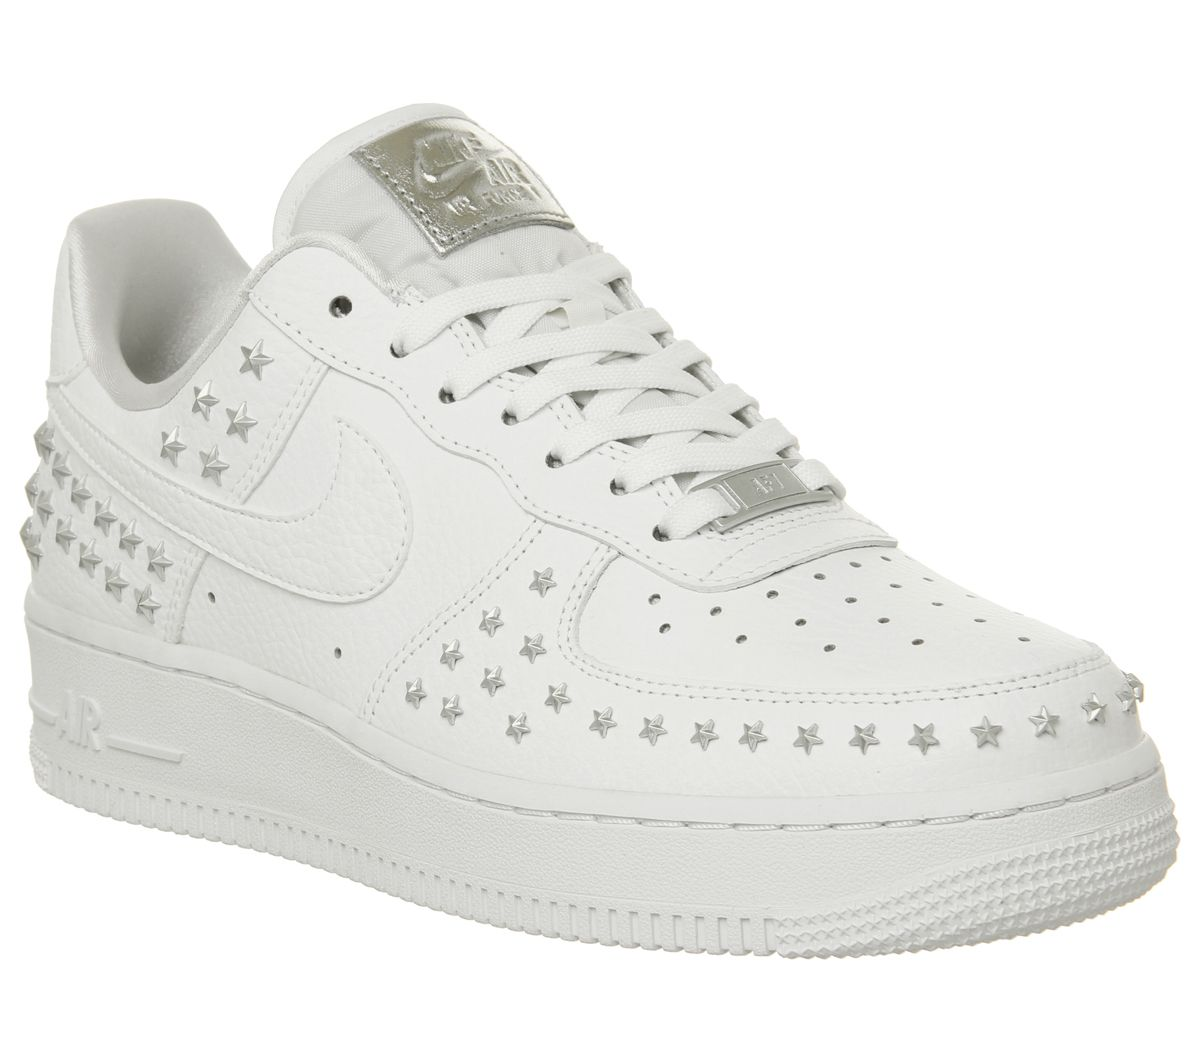 the latest cfcd2 5baf0 Nike Air Force 1 07 Trainers White Star Stud - Hers trainers